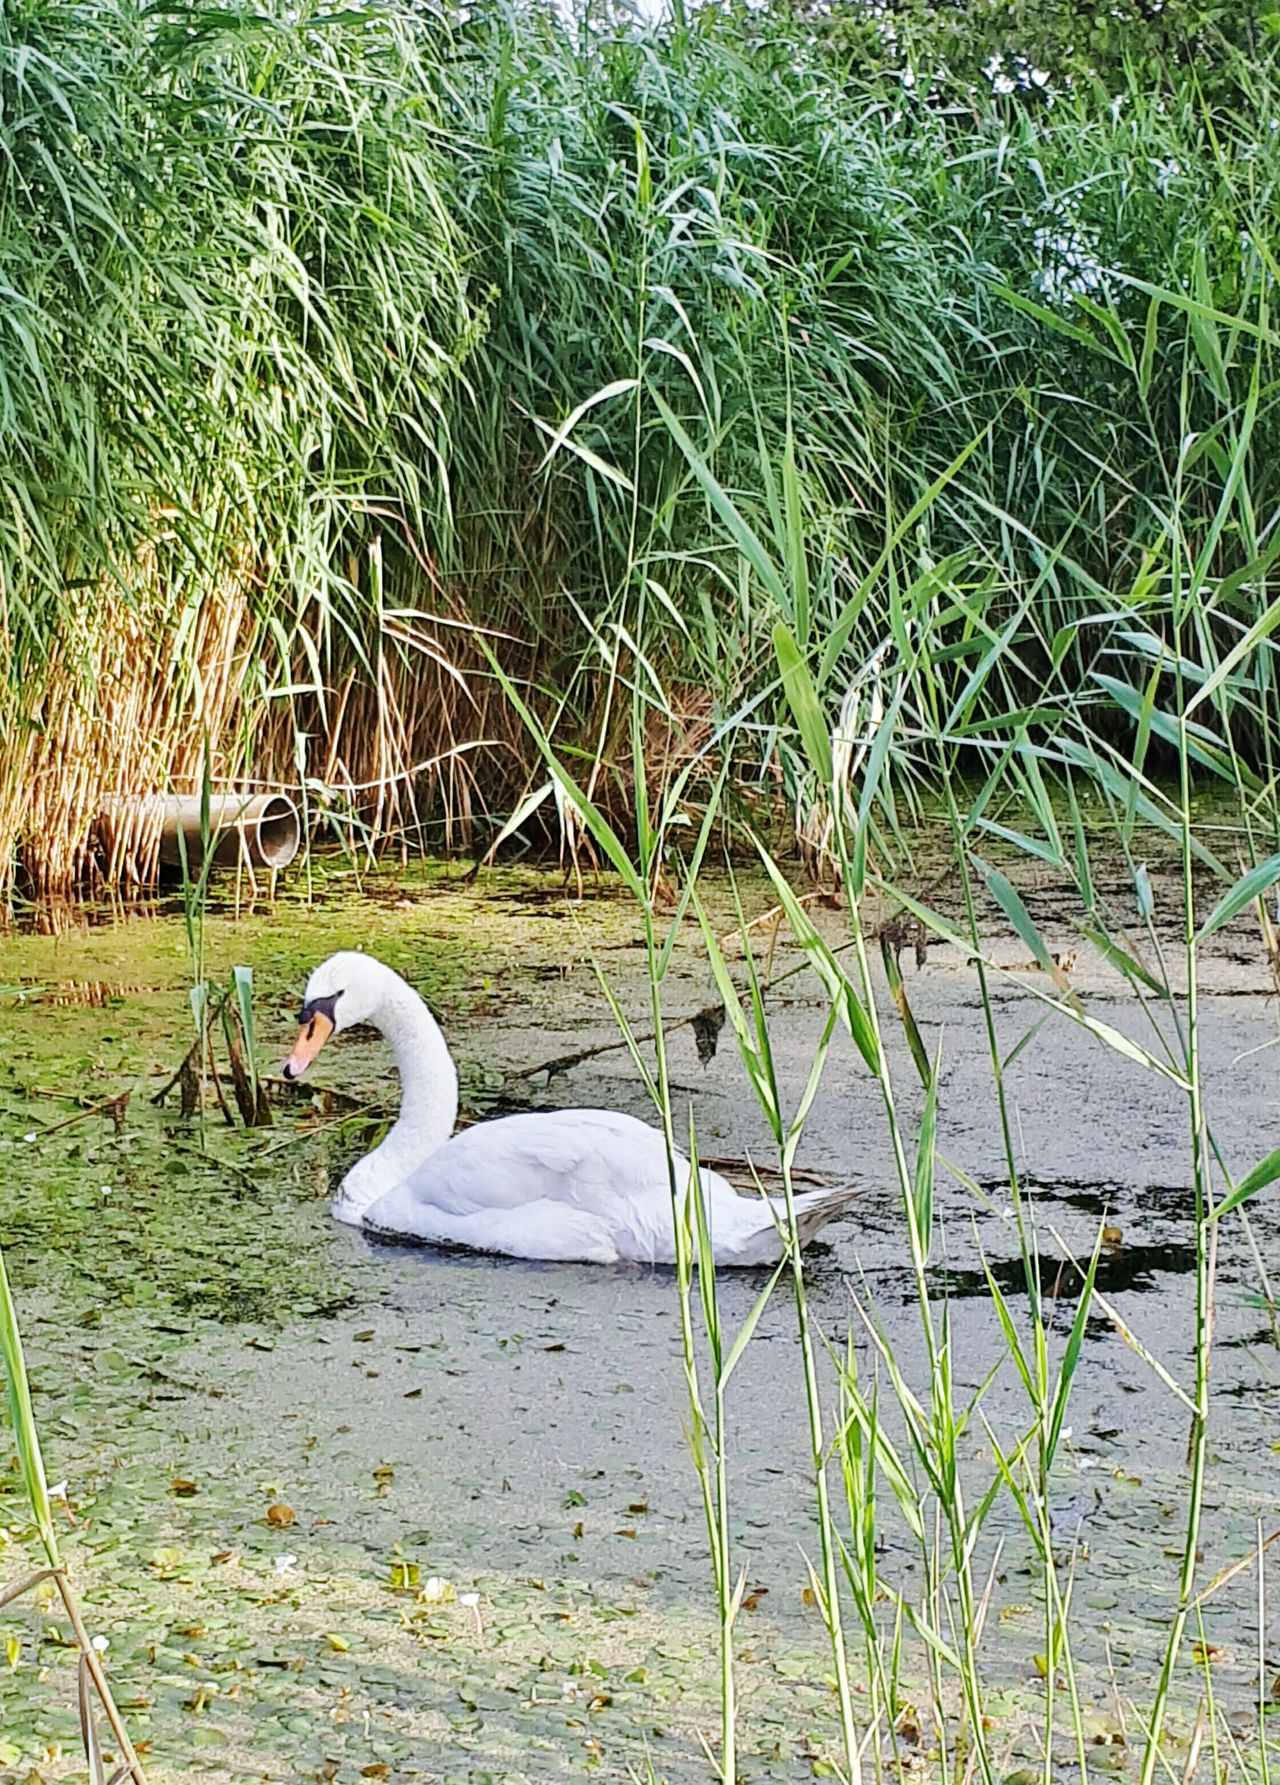 Lake Animals In The Wild Bird Animal Themes Water Day Swan One Animal Nature Outdoors Grass Swimming No People